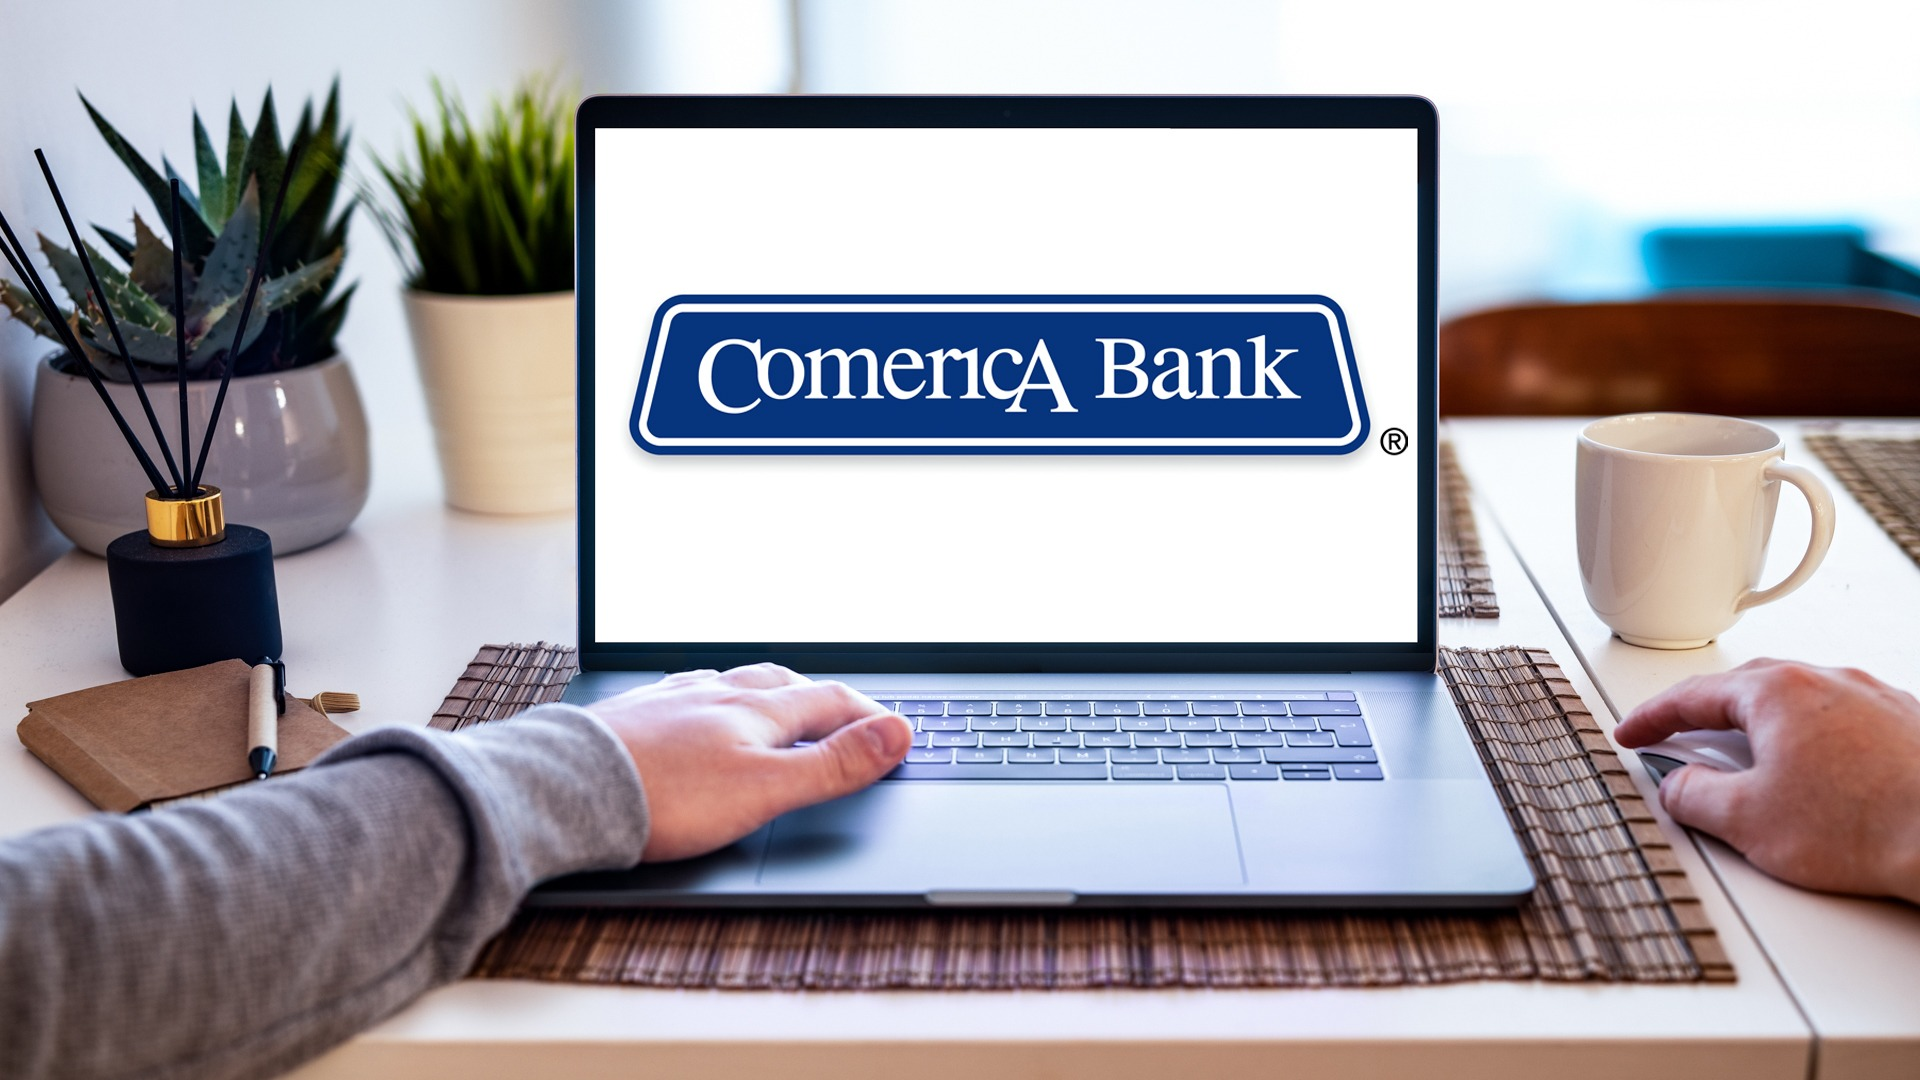 Comerica Bank Login: Online Banking, Credit Card & Make Payments At www.comerica.com